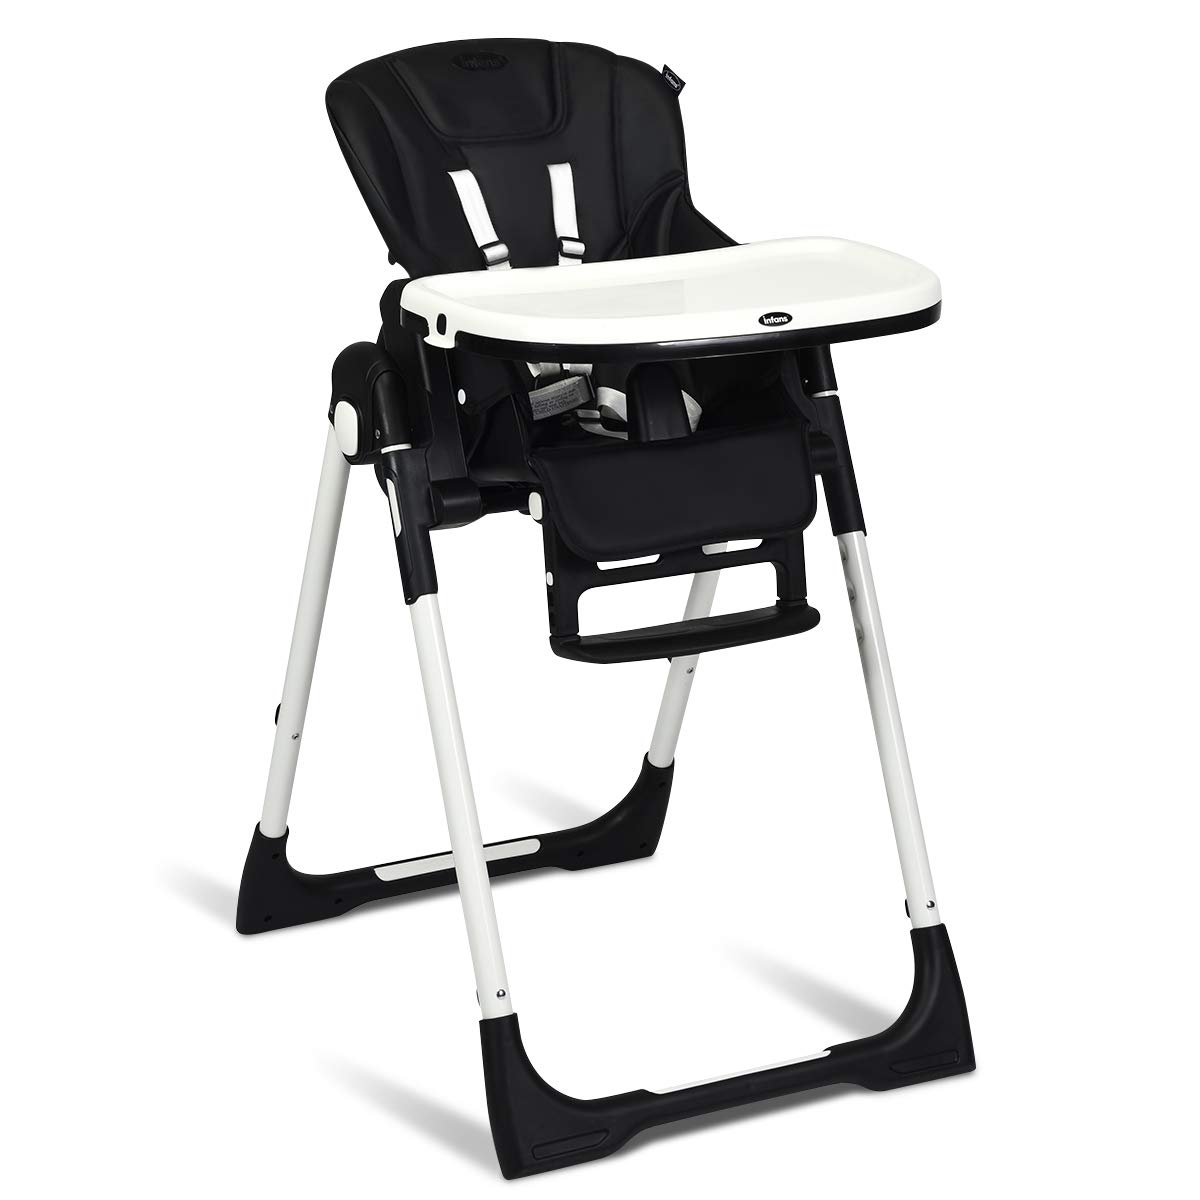 INFANS High Chair for Babies & Toddlers, Foldable Highchair with Multiple Adjustable Backrest, Footrest and Seat Height, Removable Tray, Detachable PU Leather Cushion, Built-in Rear Wheels (Black) by INFANS